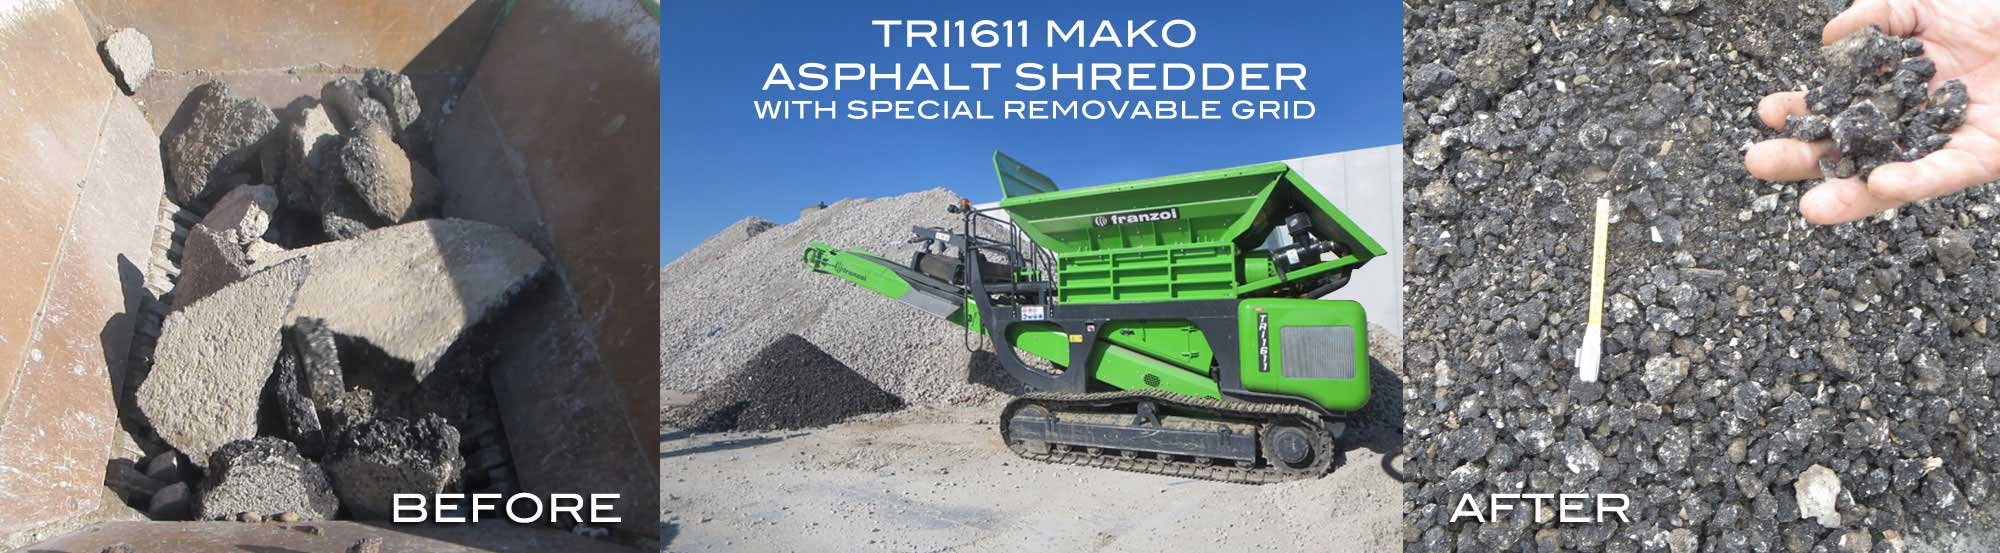 asphalt shredder